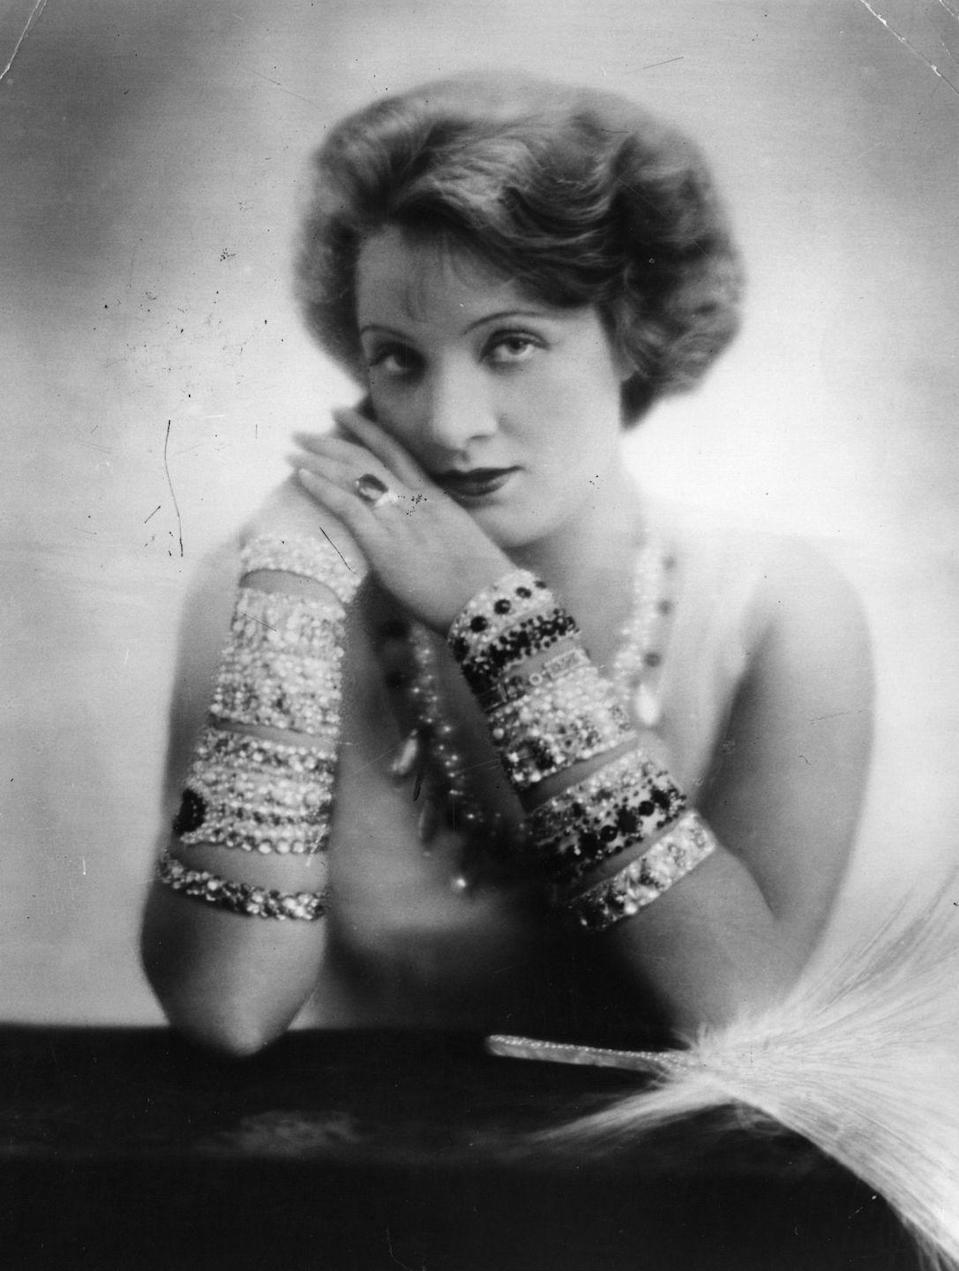 <p>Dietrich sits for a portrait and proves maximalism, thanks to her stacks of jeweled bangles and bracelets, is still alive and strong. <br></p>